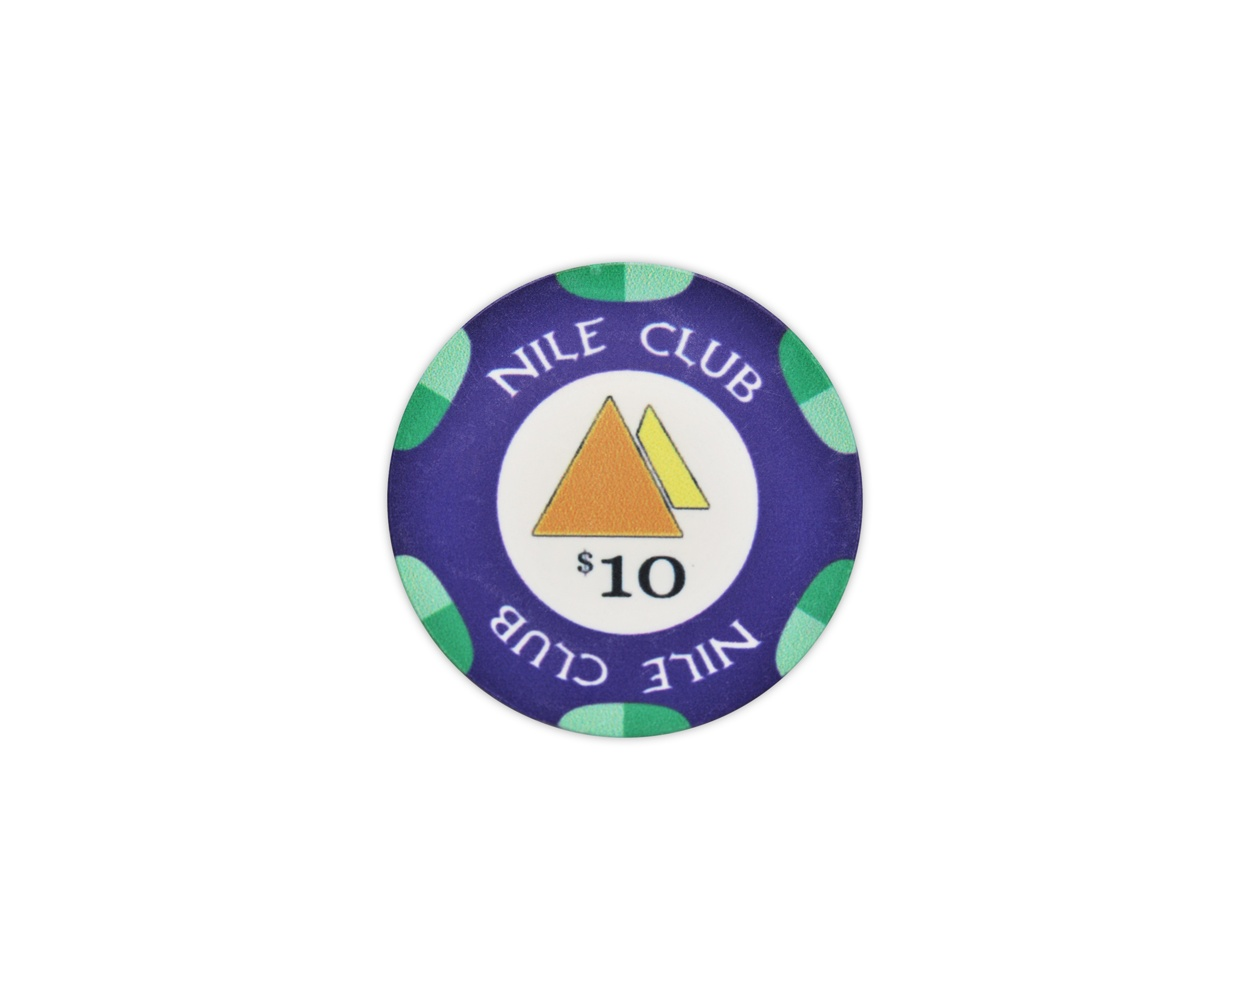 Nile Club - $10 D. Blue Ceramic Poker Chips